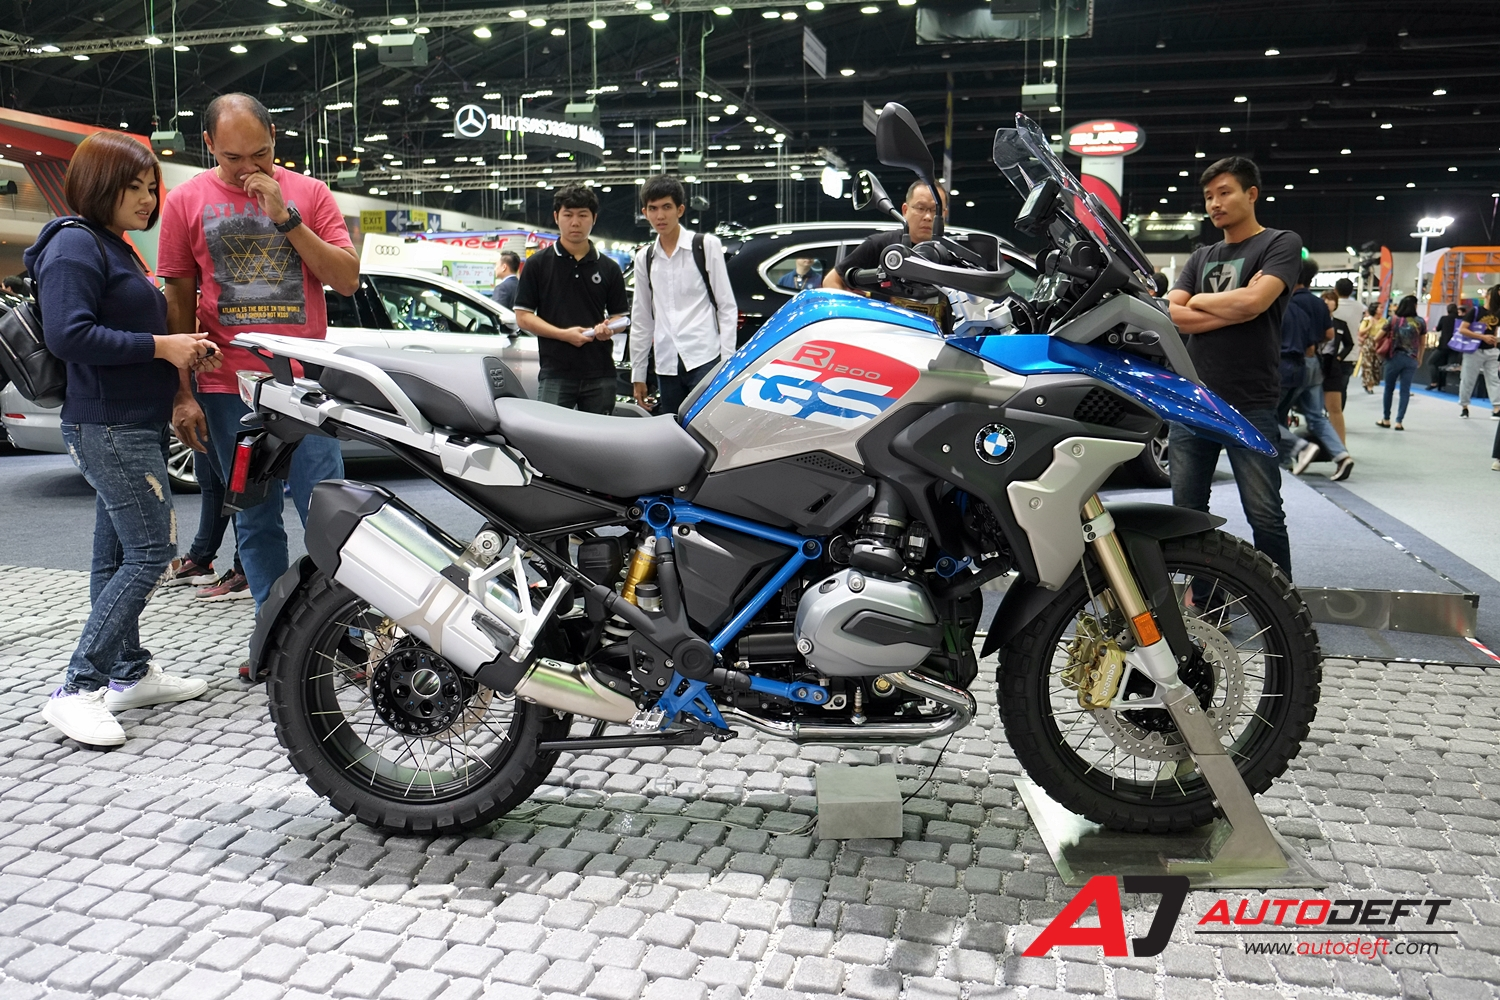 BMW R 1200 GS Rallye Version